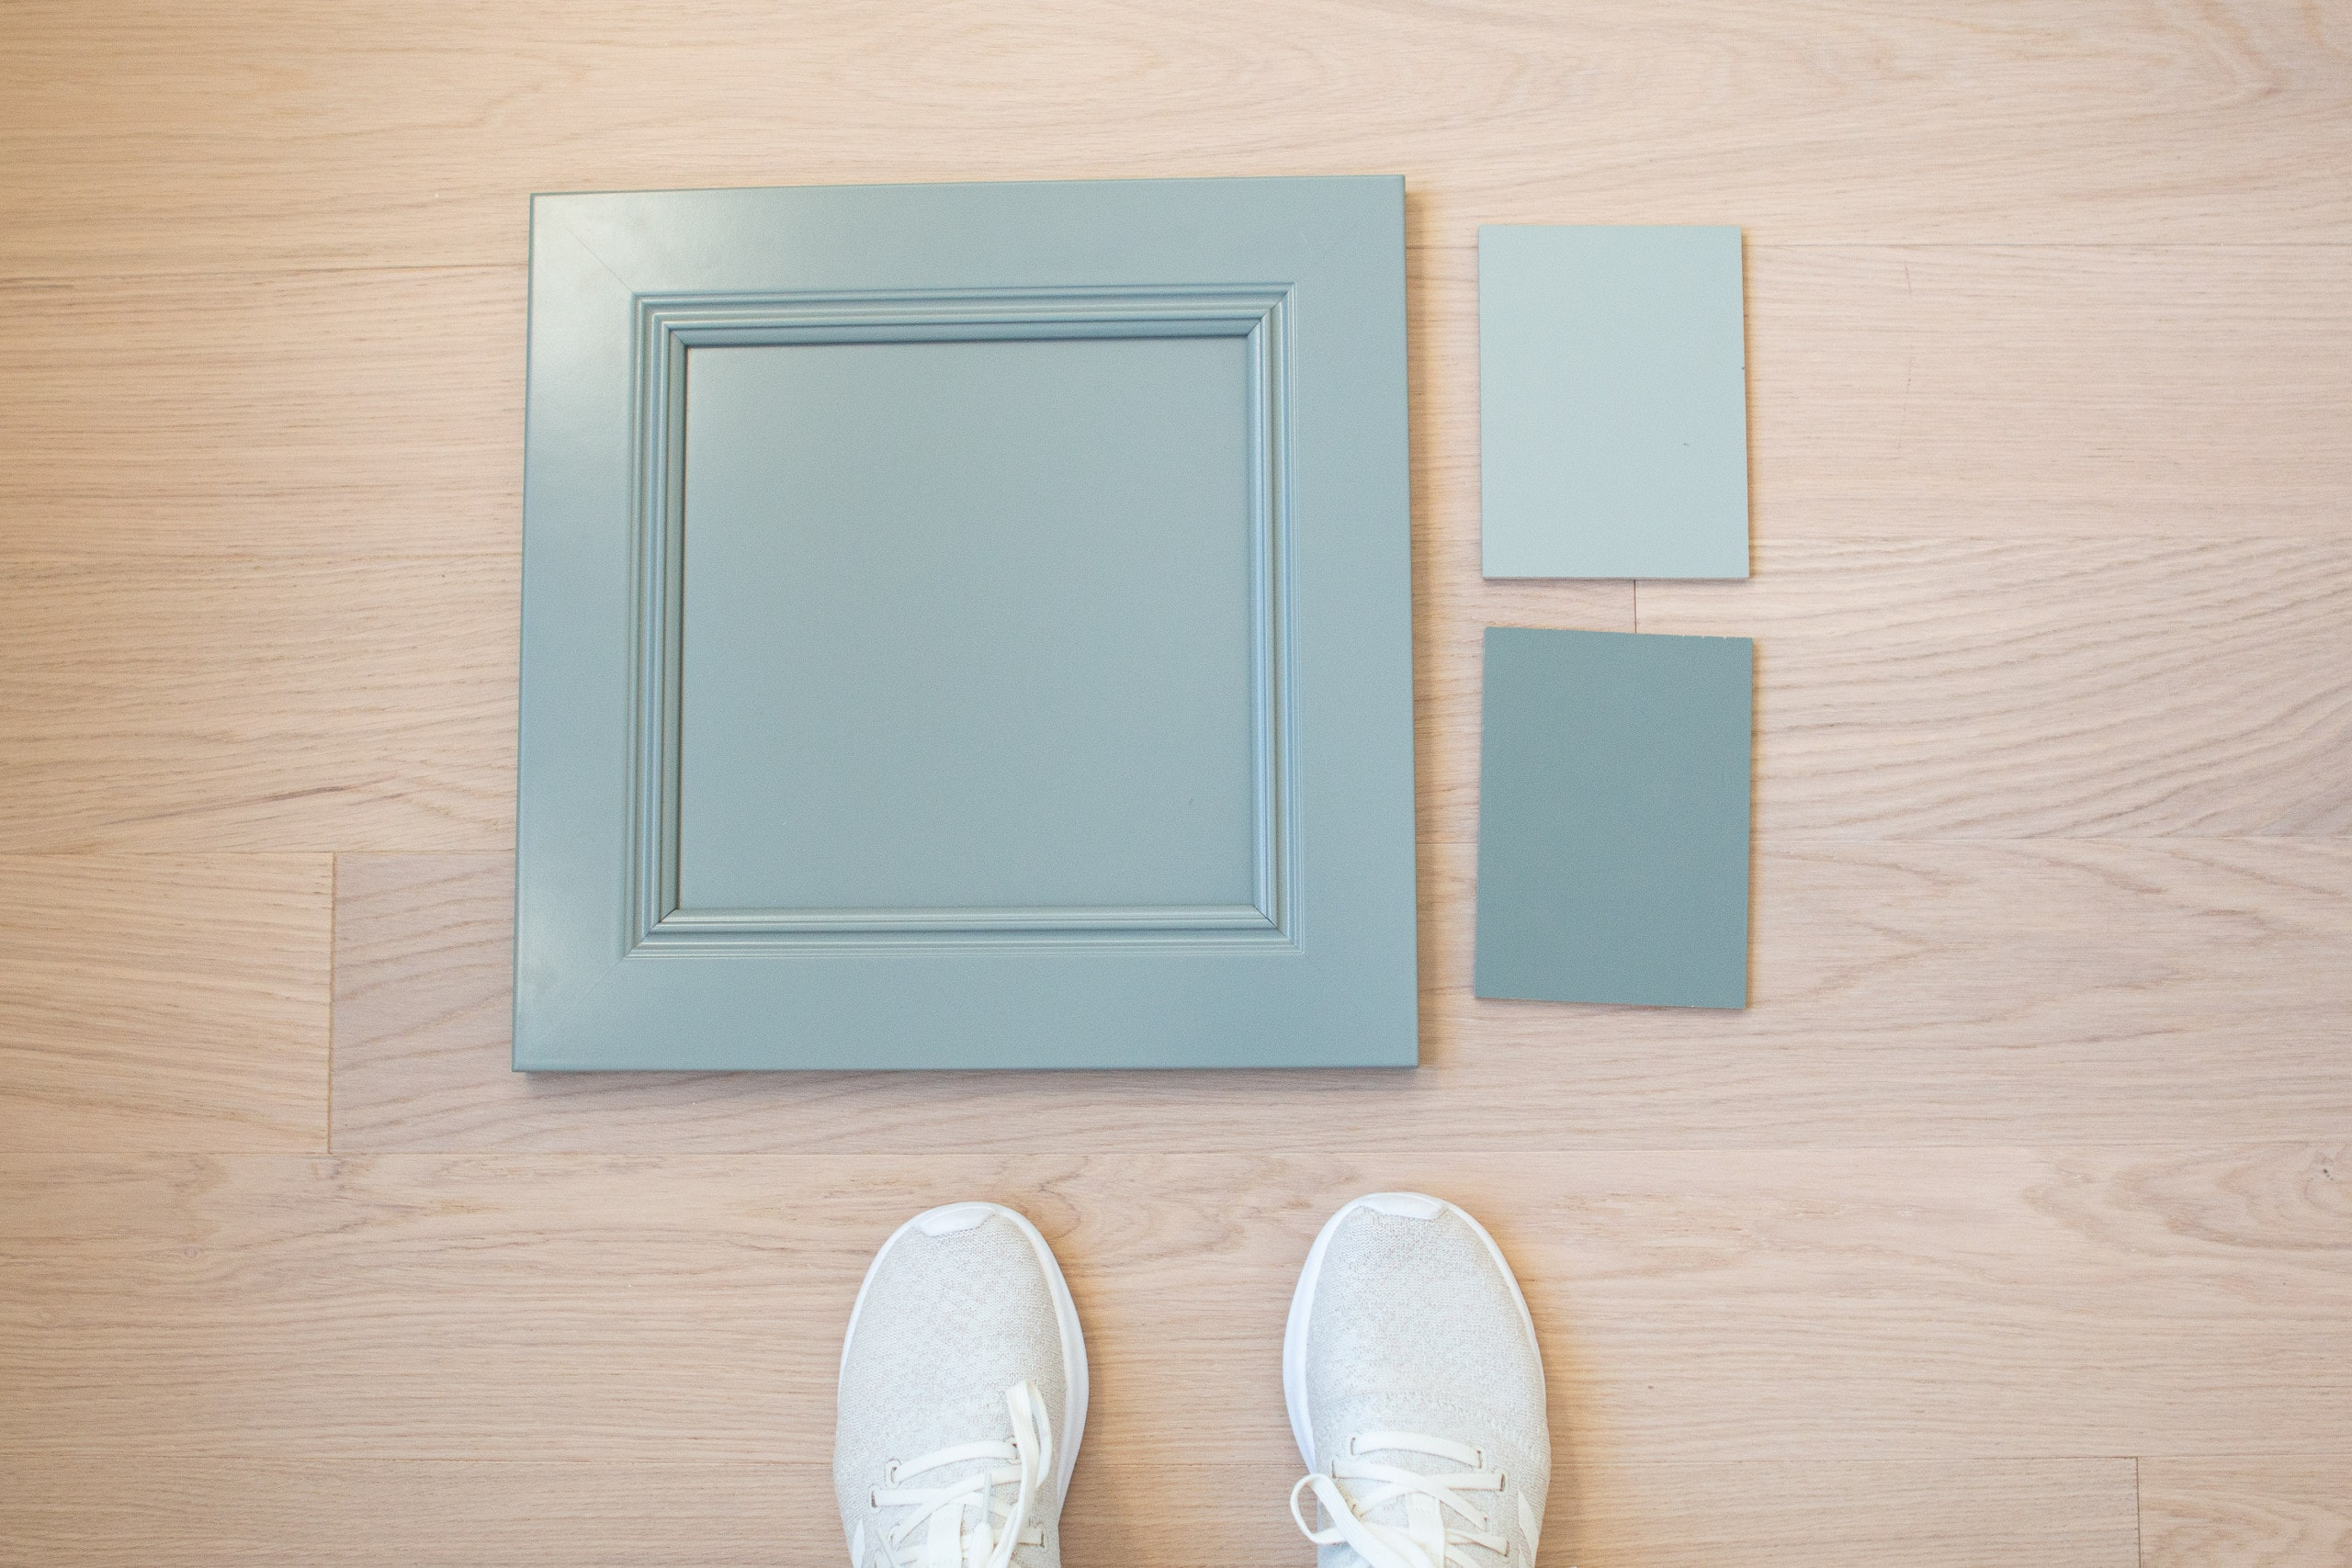 Deciding on a cabinetry color